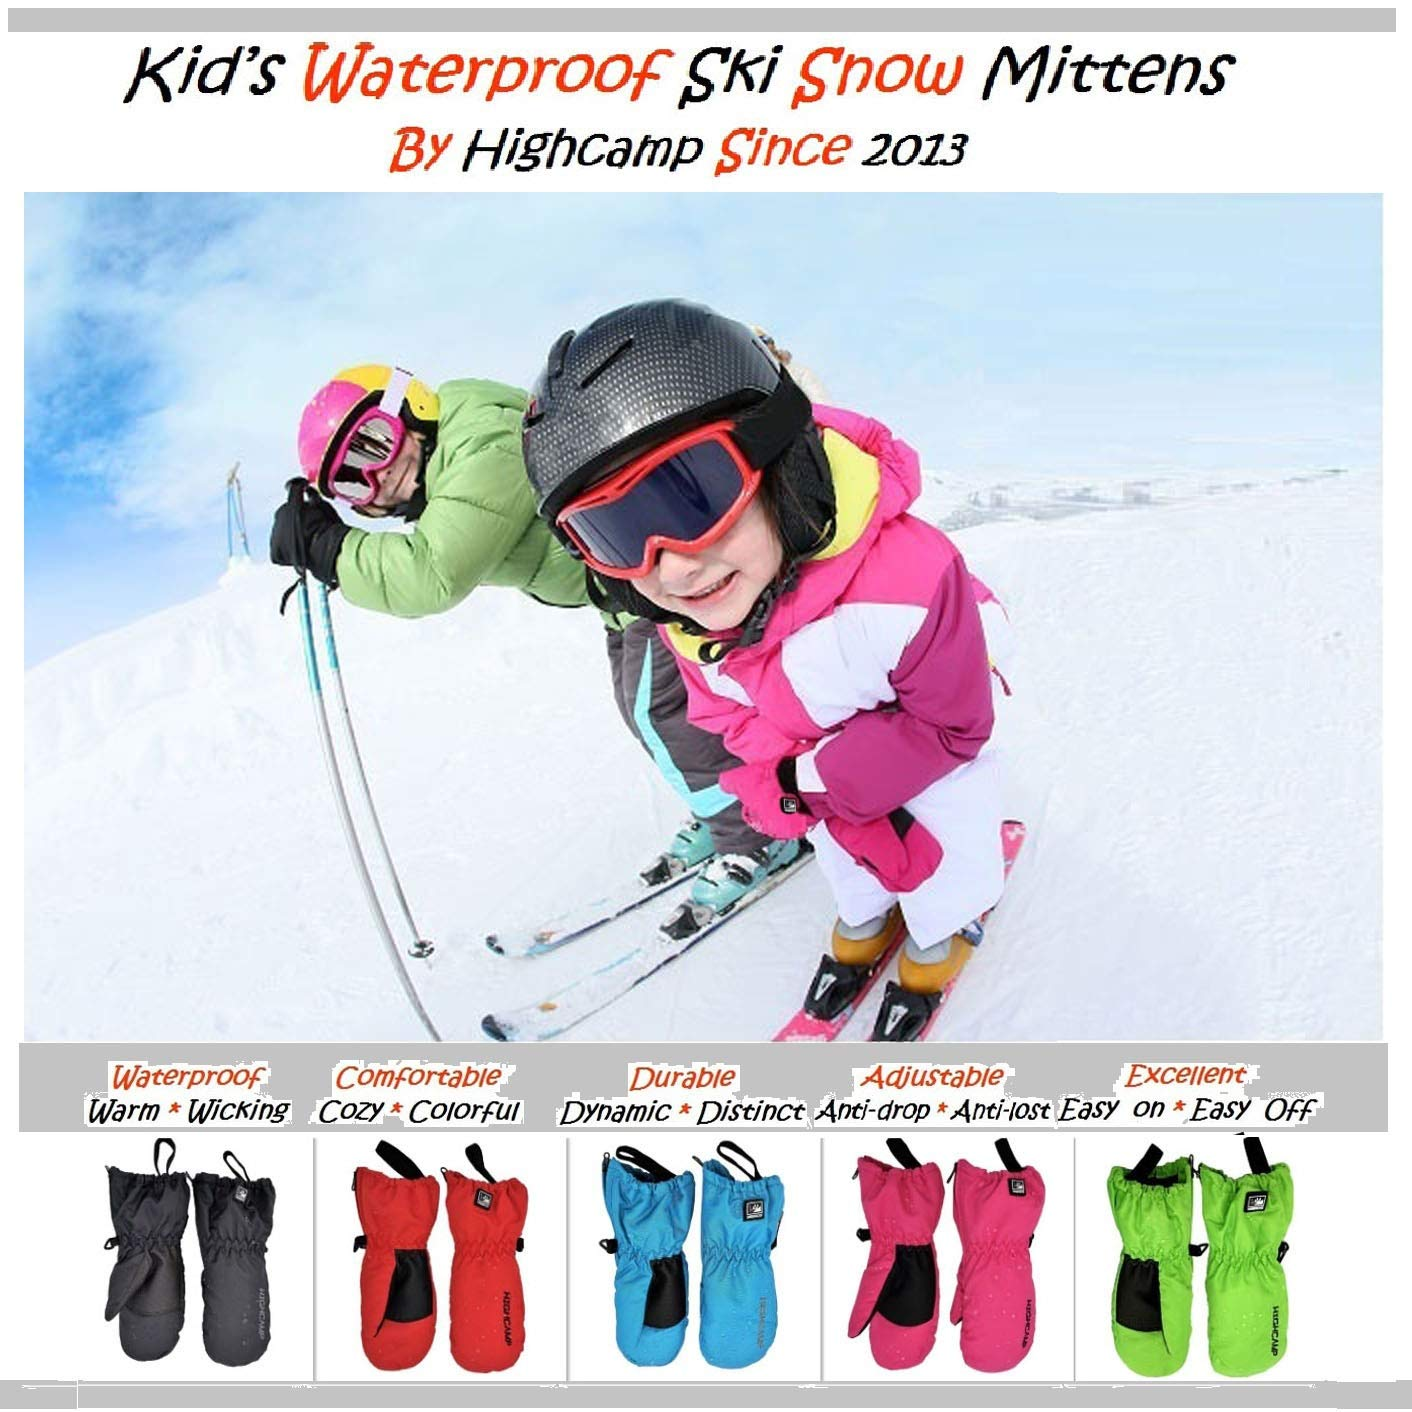 Highcamp Kids Waterproof Snow Mittens Covered Boys Girls Age 2-12